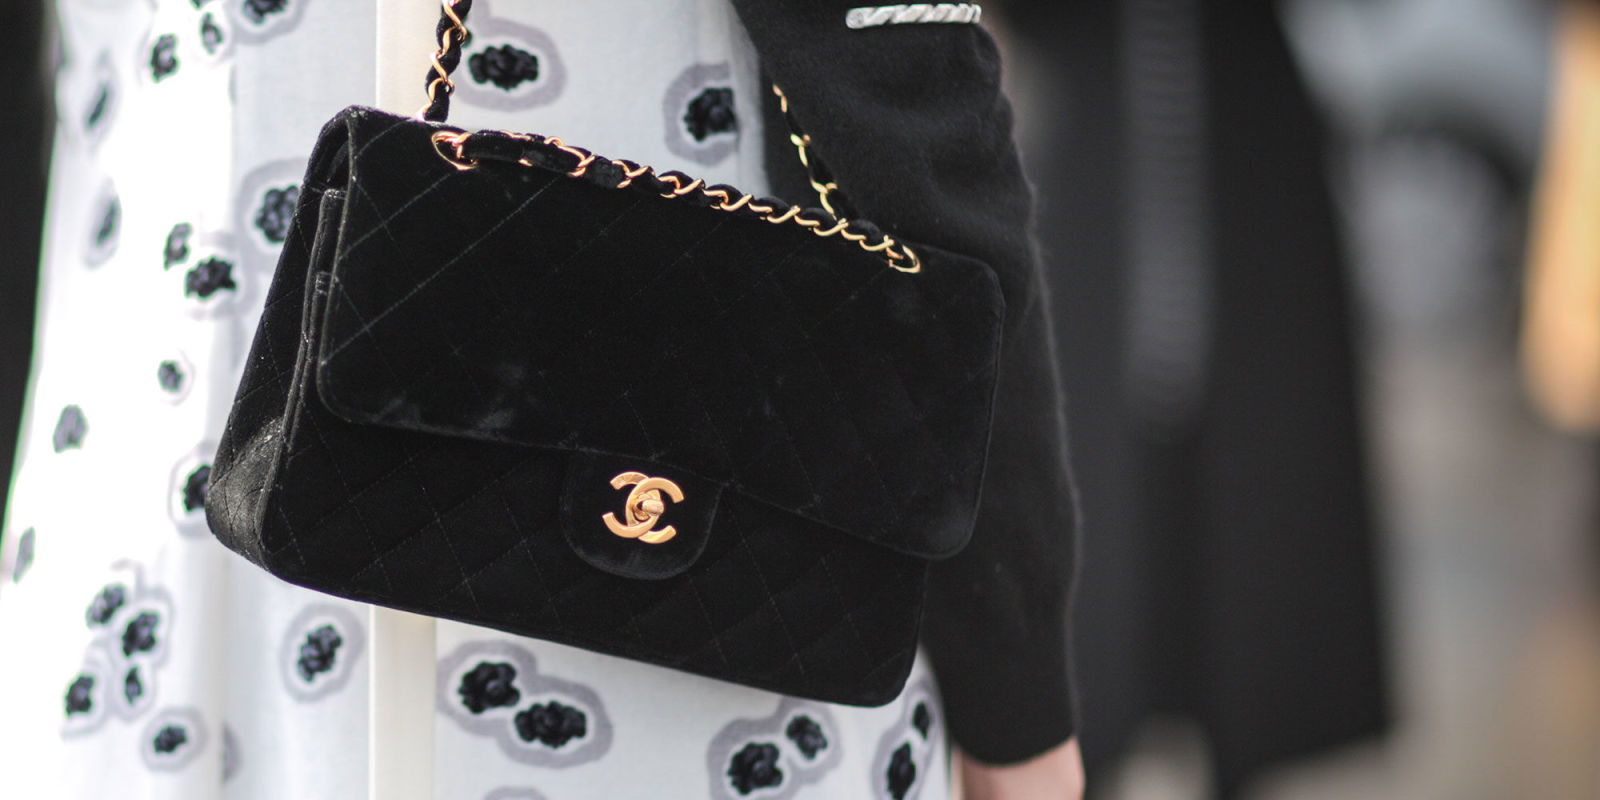 The Best Investment Bags To Buy - Chanel, Prada, Dior, Fendi ...